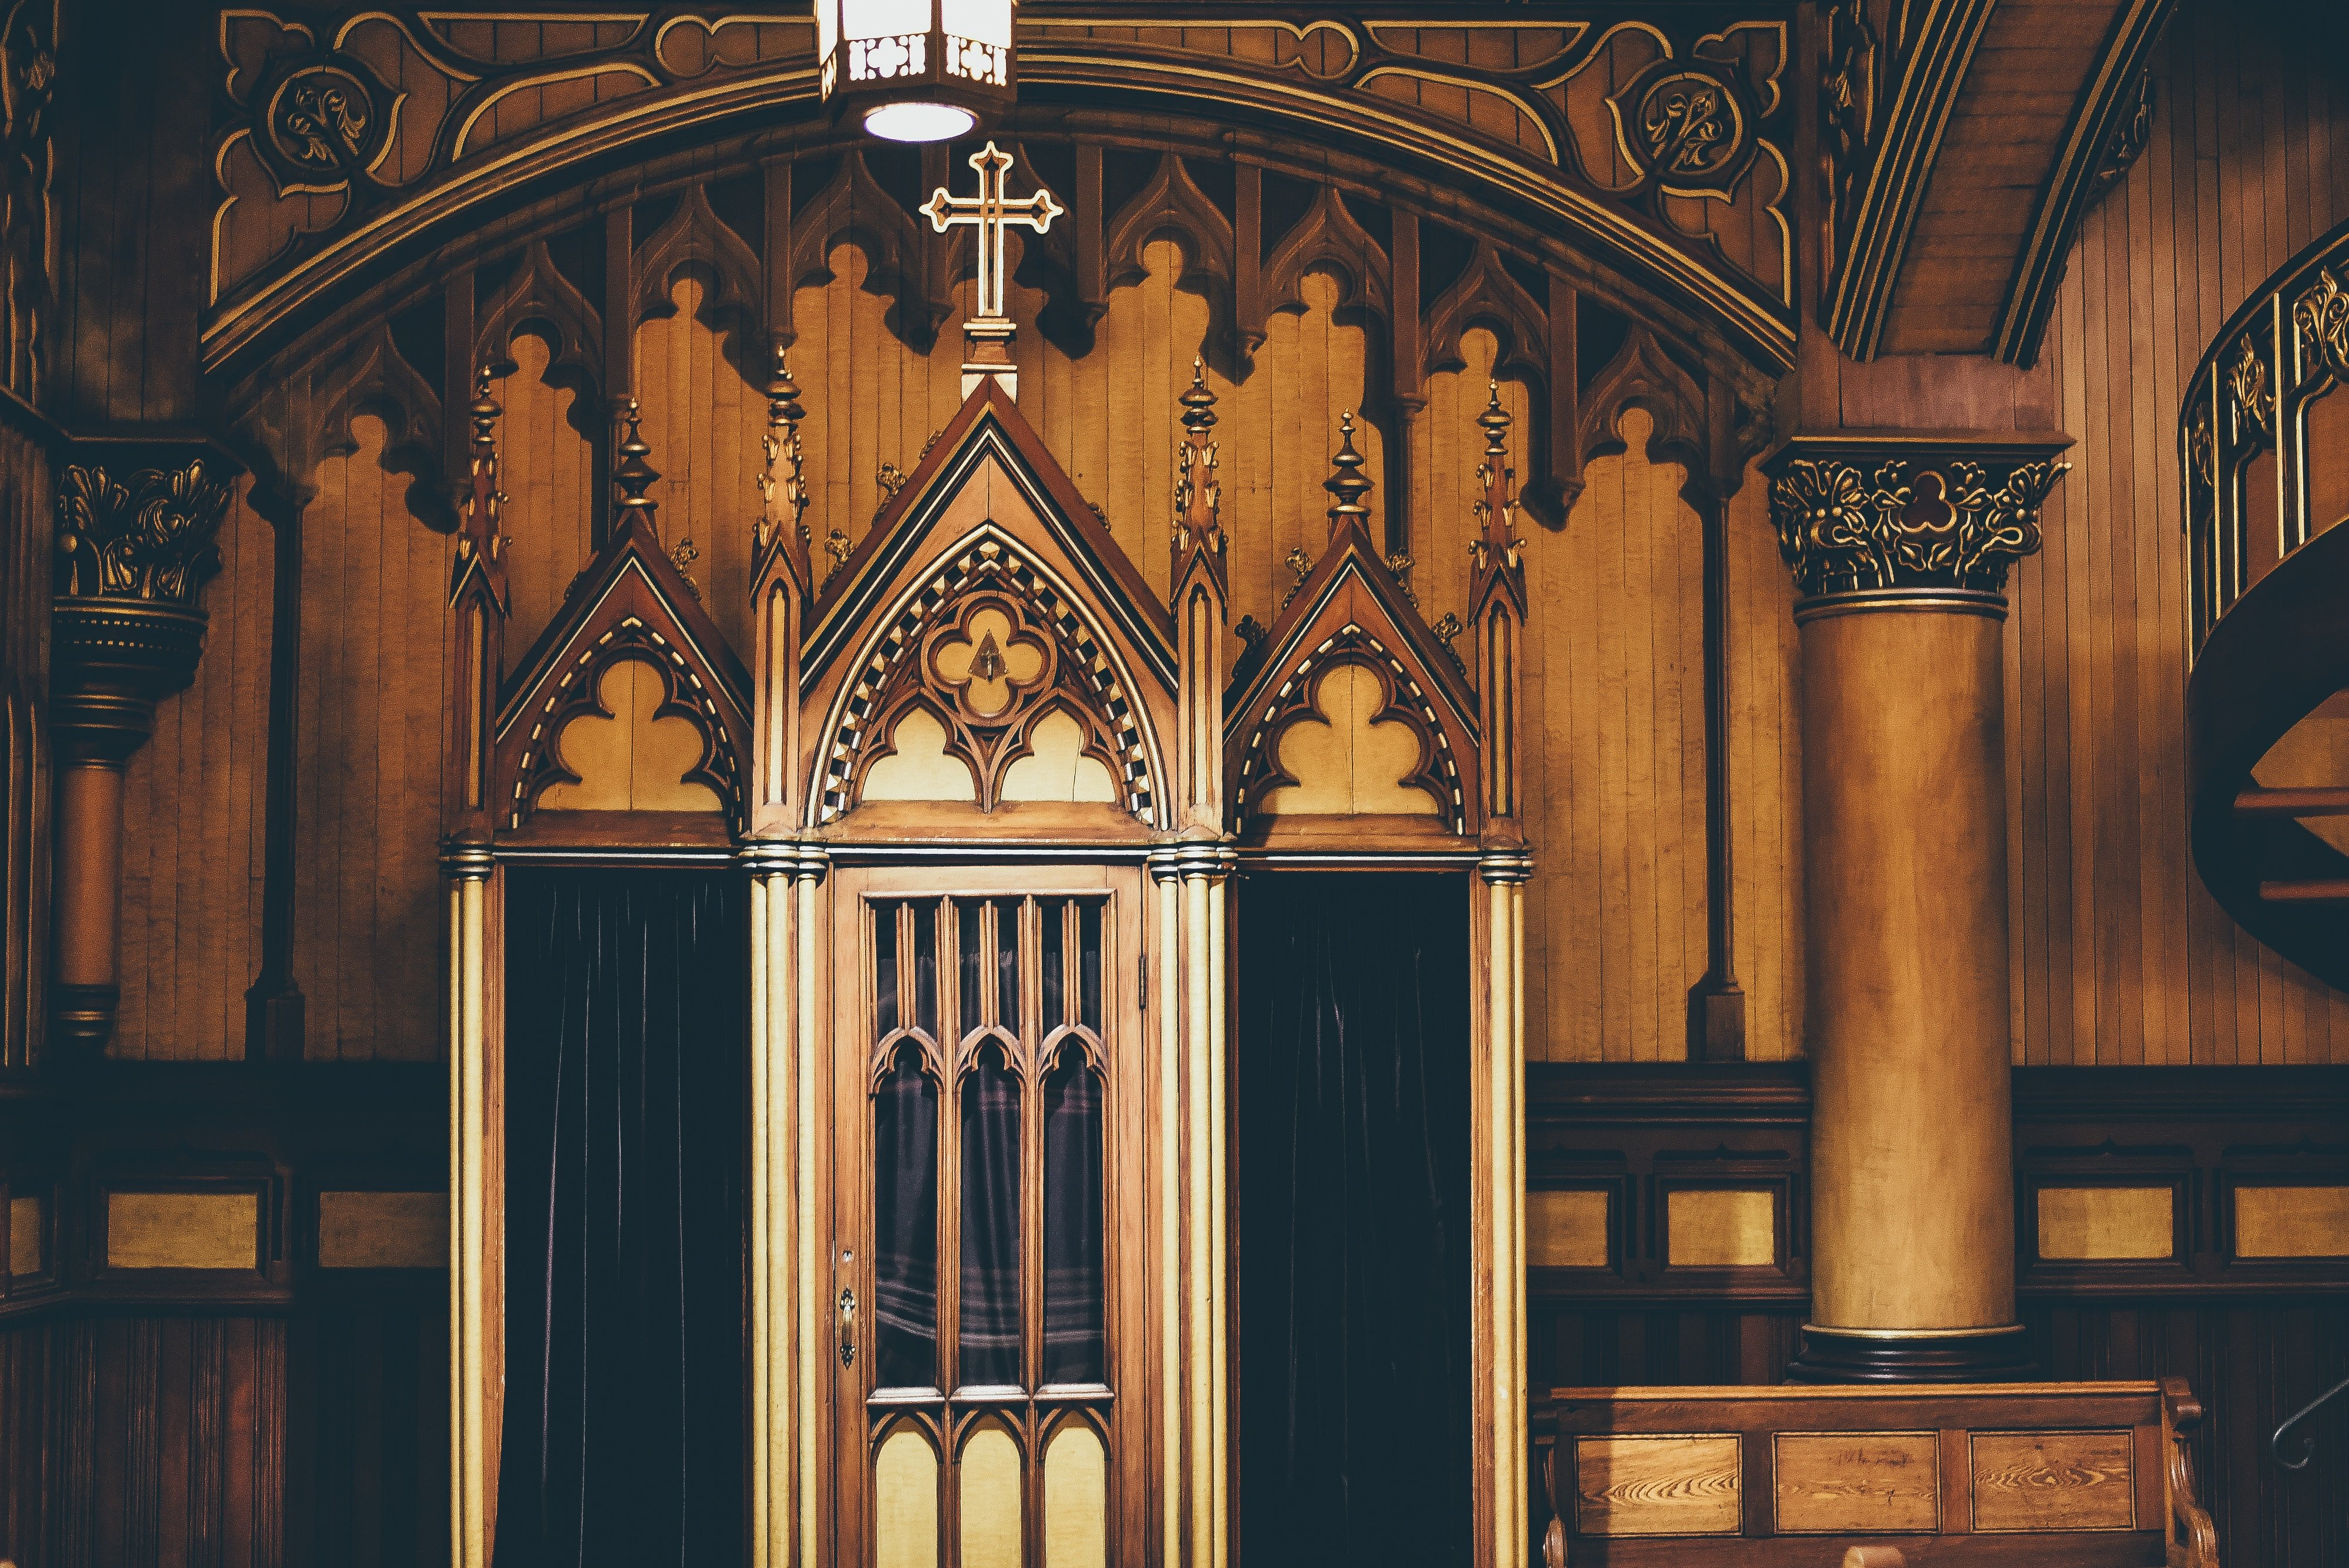 A church confessional | Source: Unsplash.com